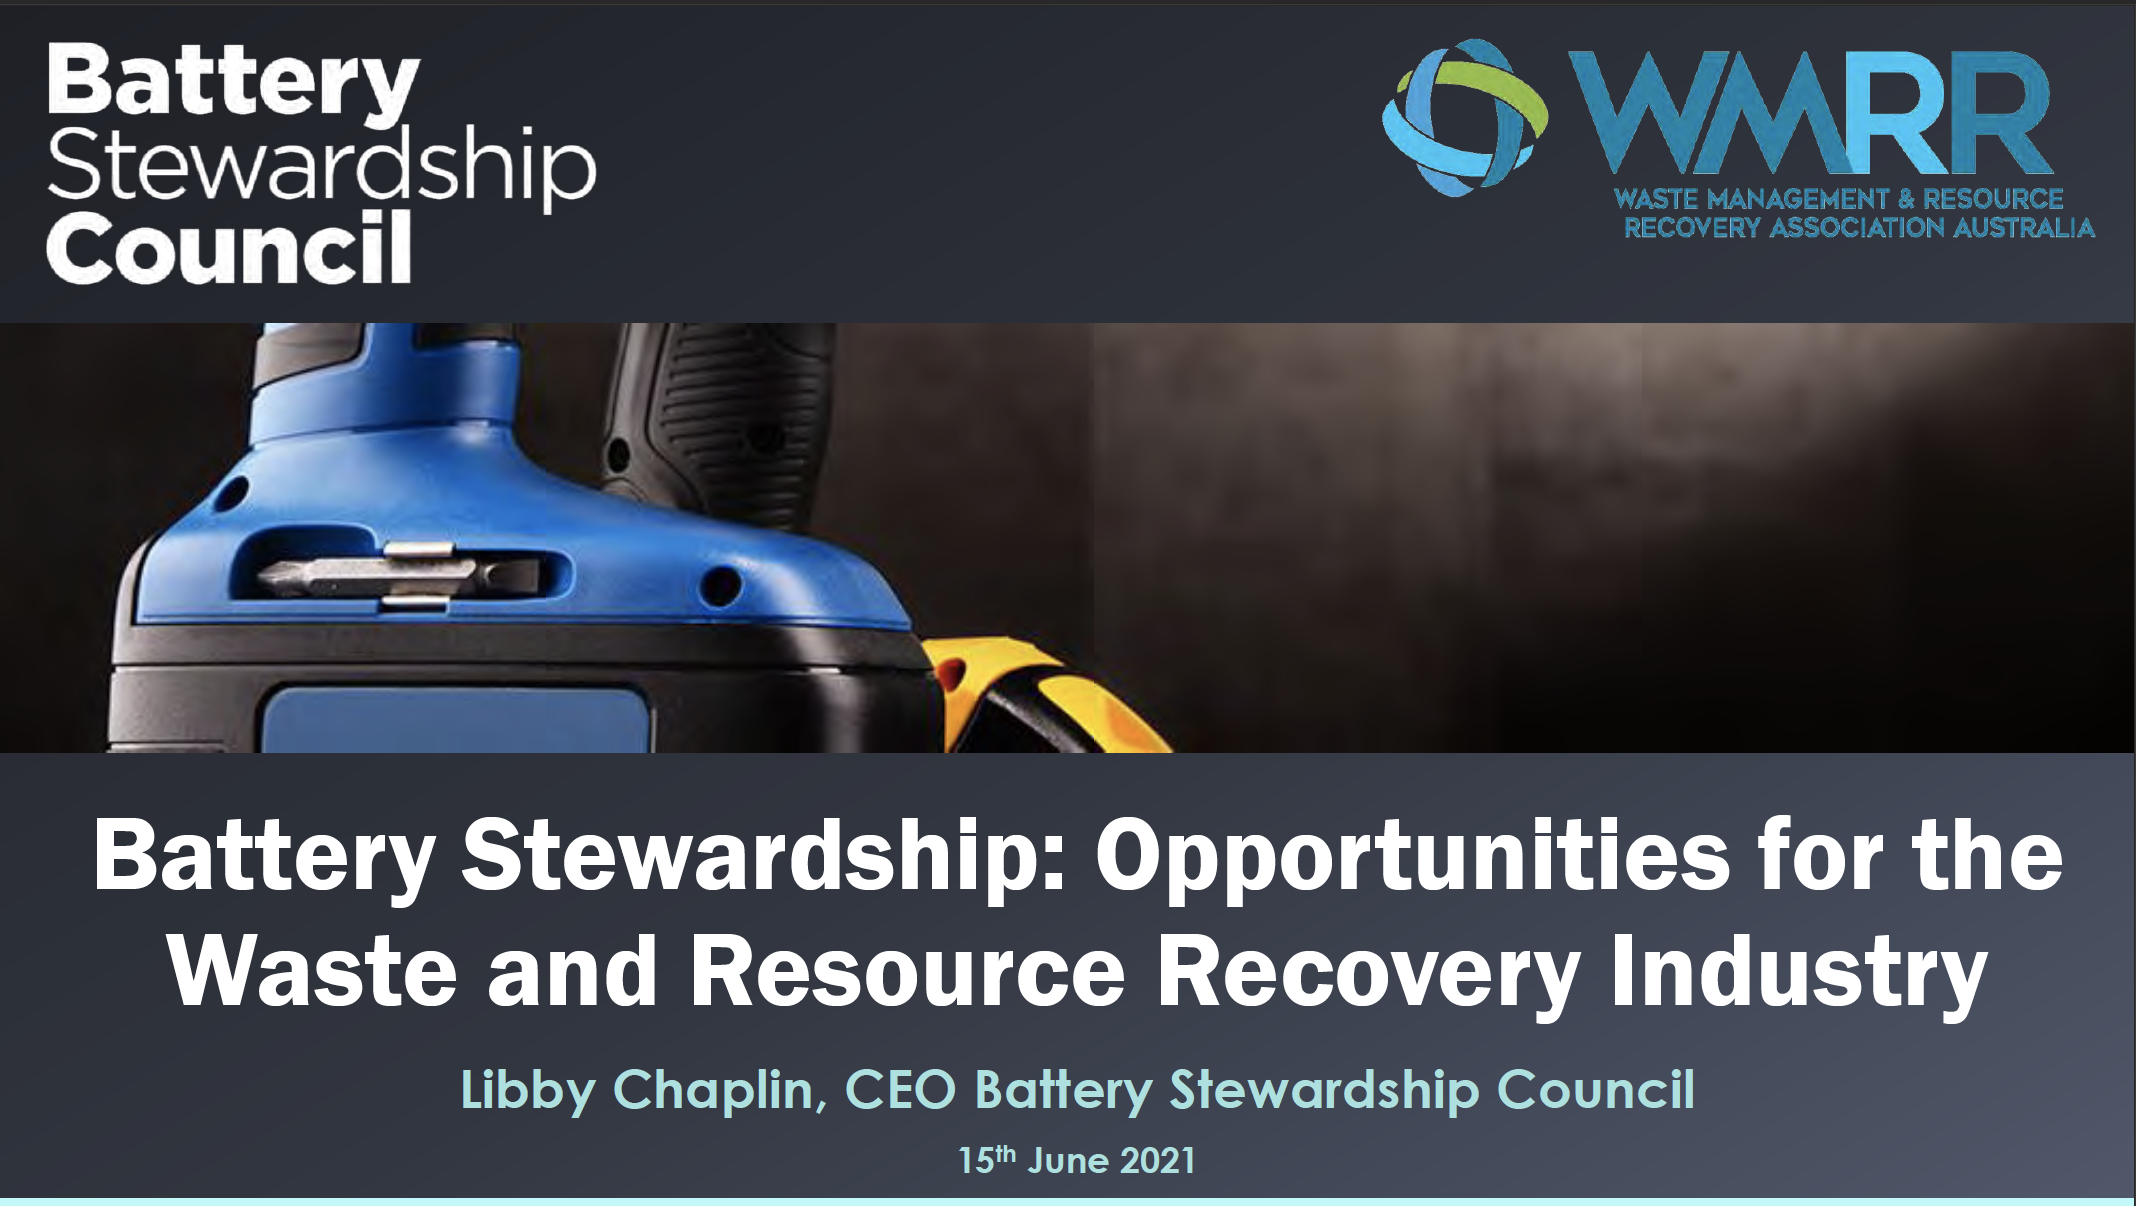 BSC Webinar for Waste Management and Resource Recovery Association  Copy